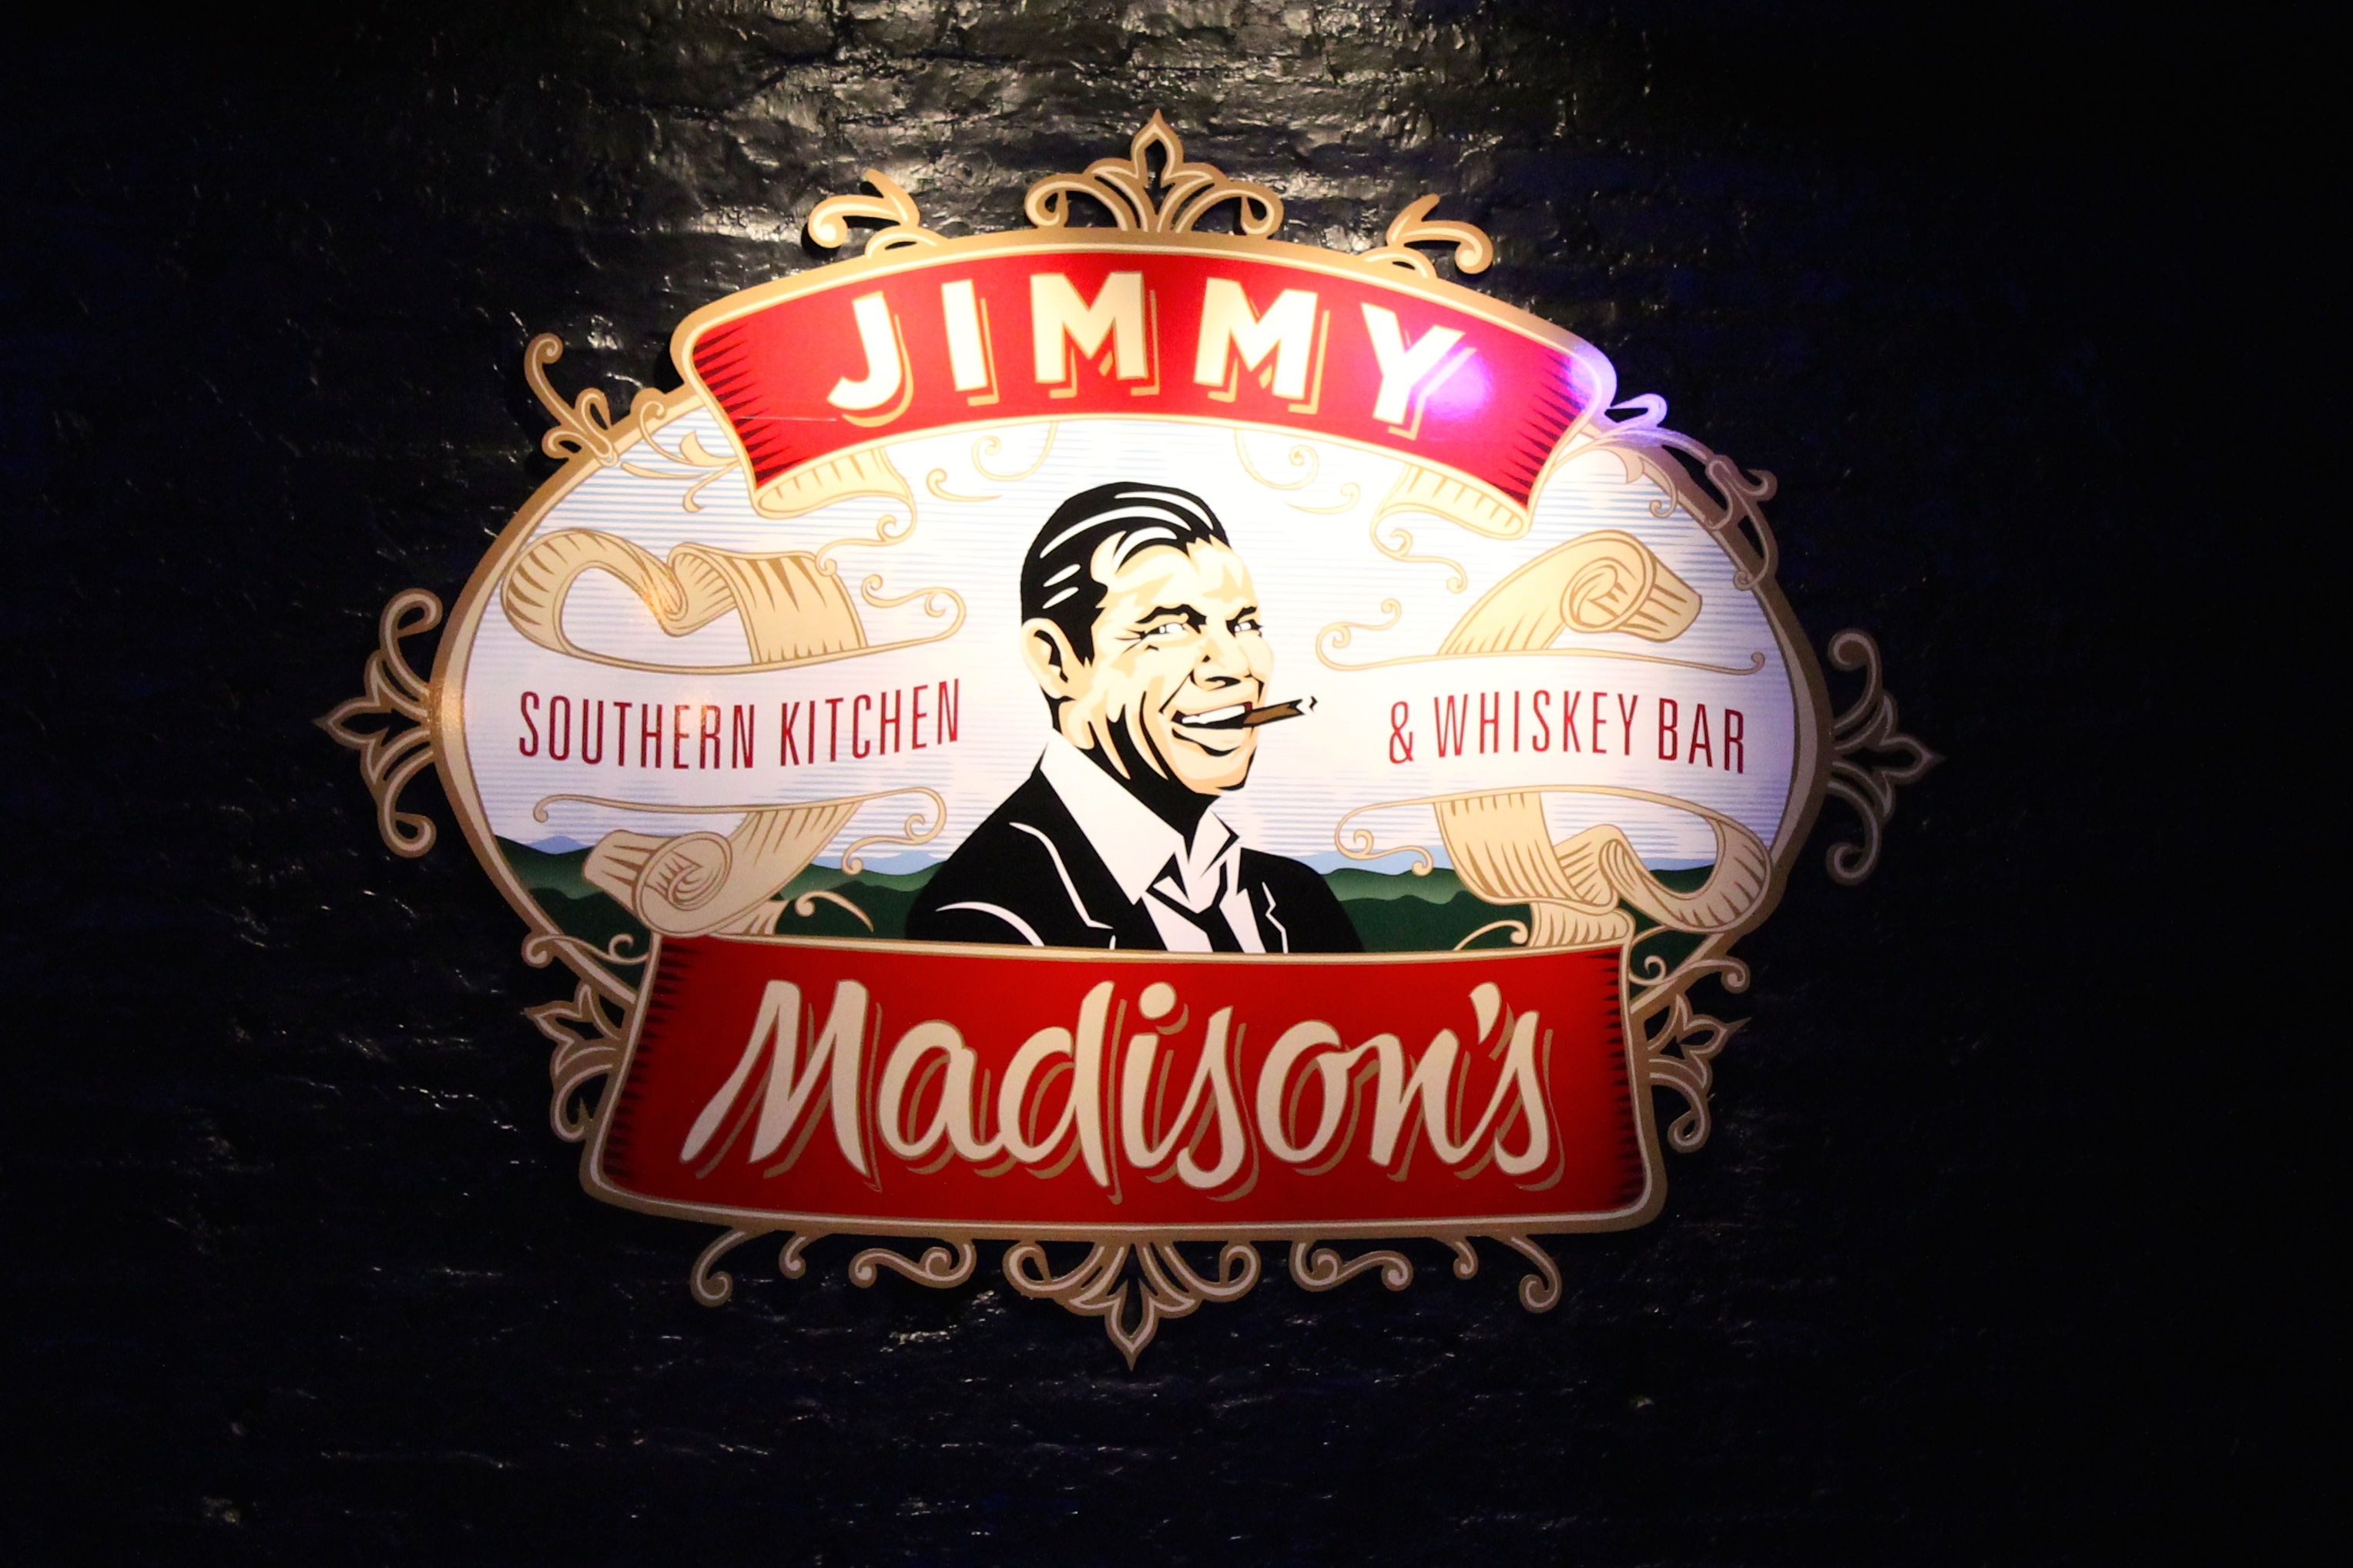 Jimmy Madison's Southern Kitchen & Whiskey Bar